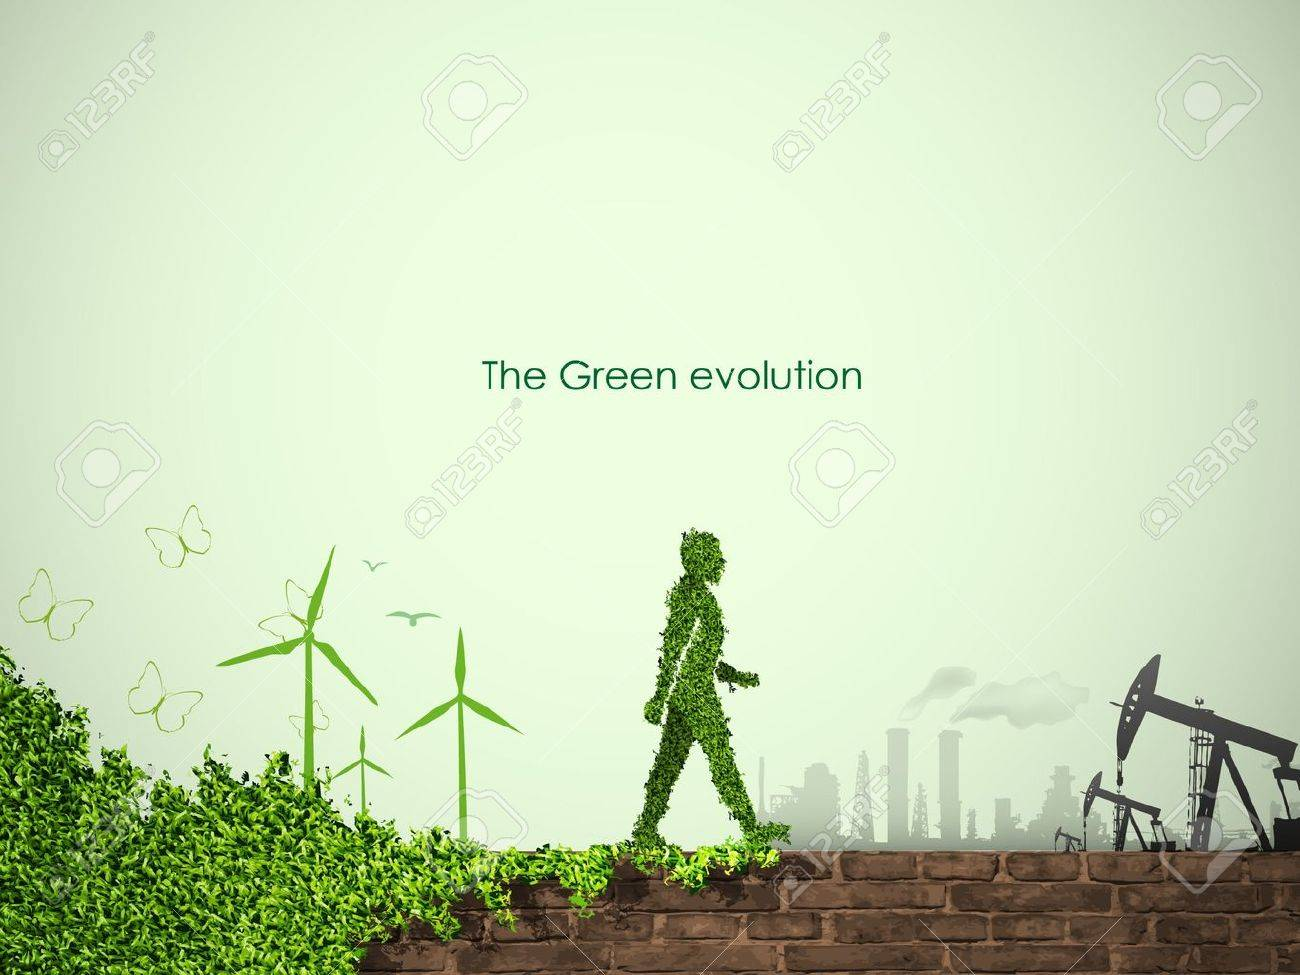 evolution of the concept of greening of the world - 14810036